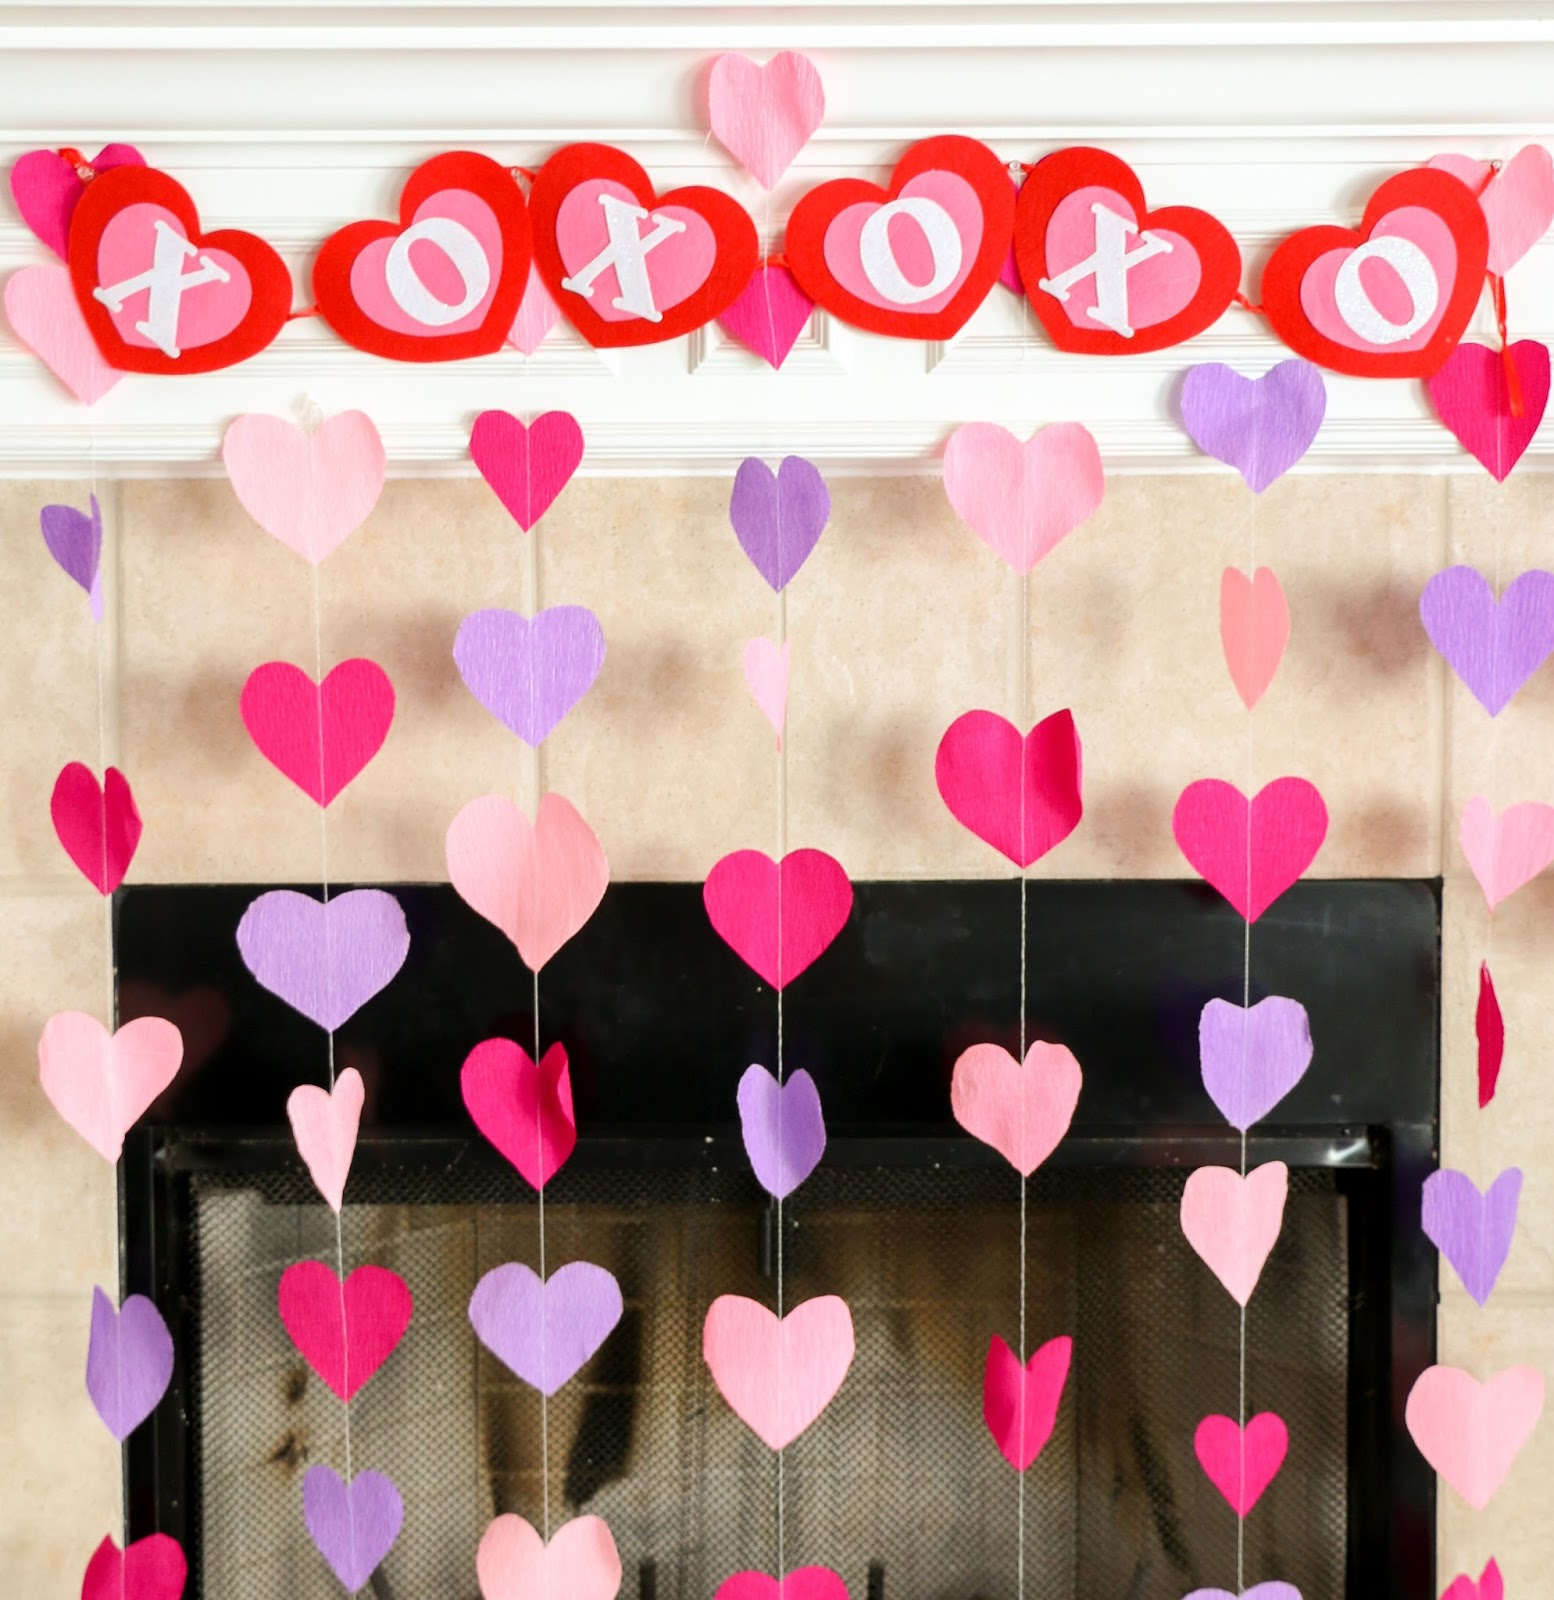 DIY It - Crepe Paper Heart Decorations - A Kailo Chic Life